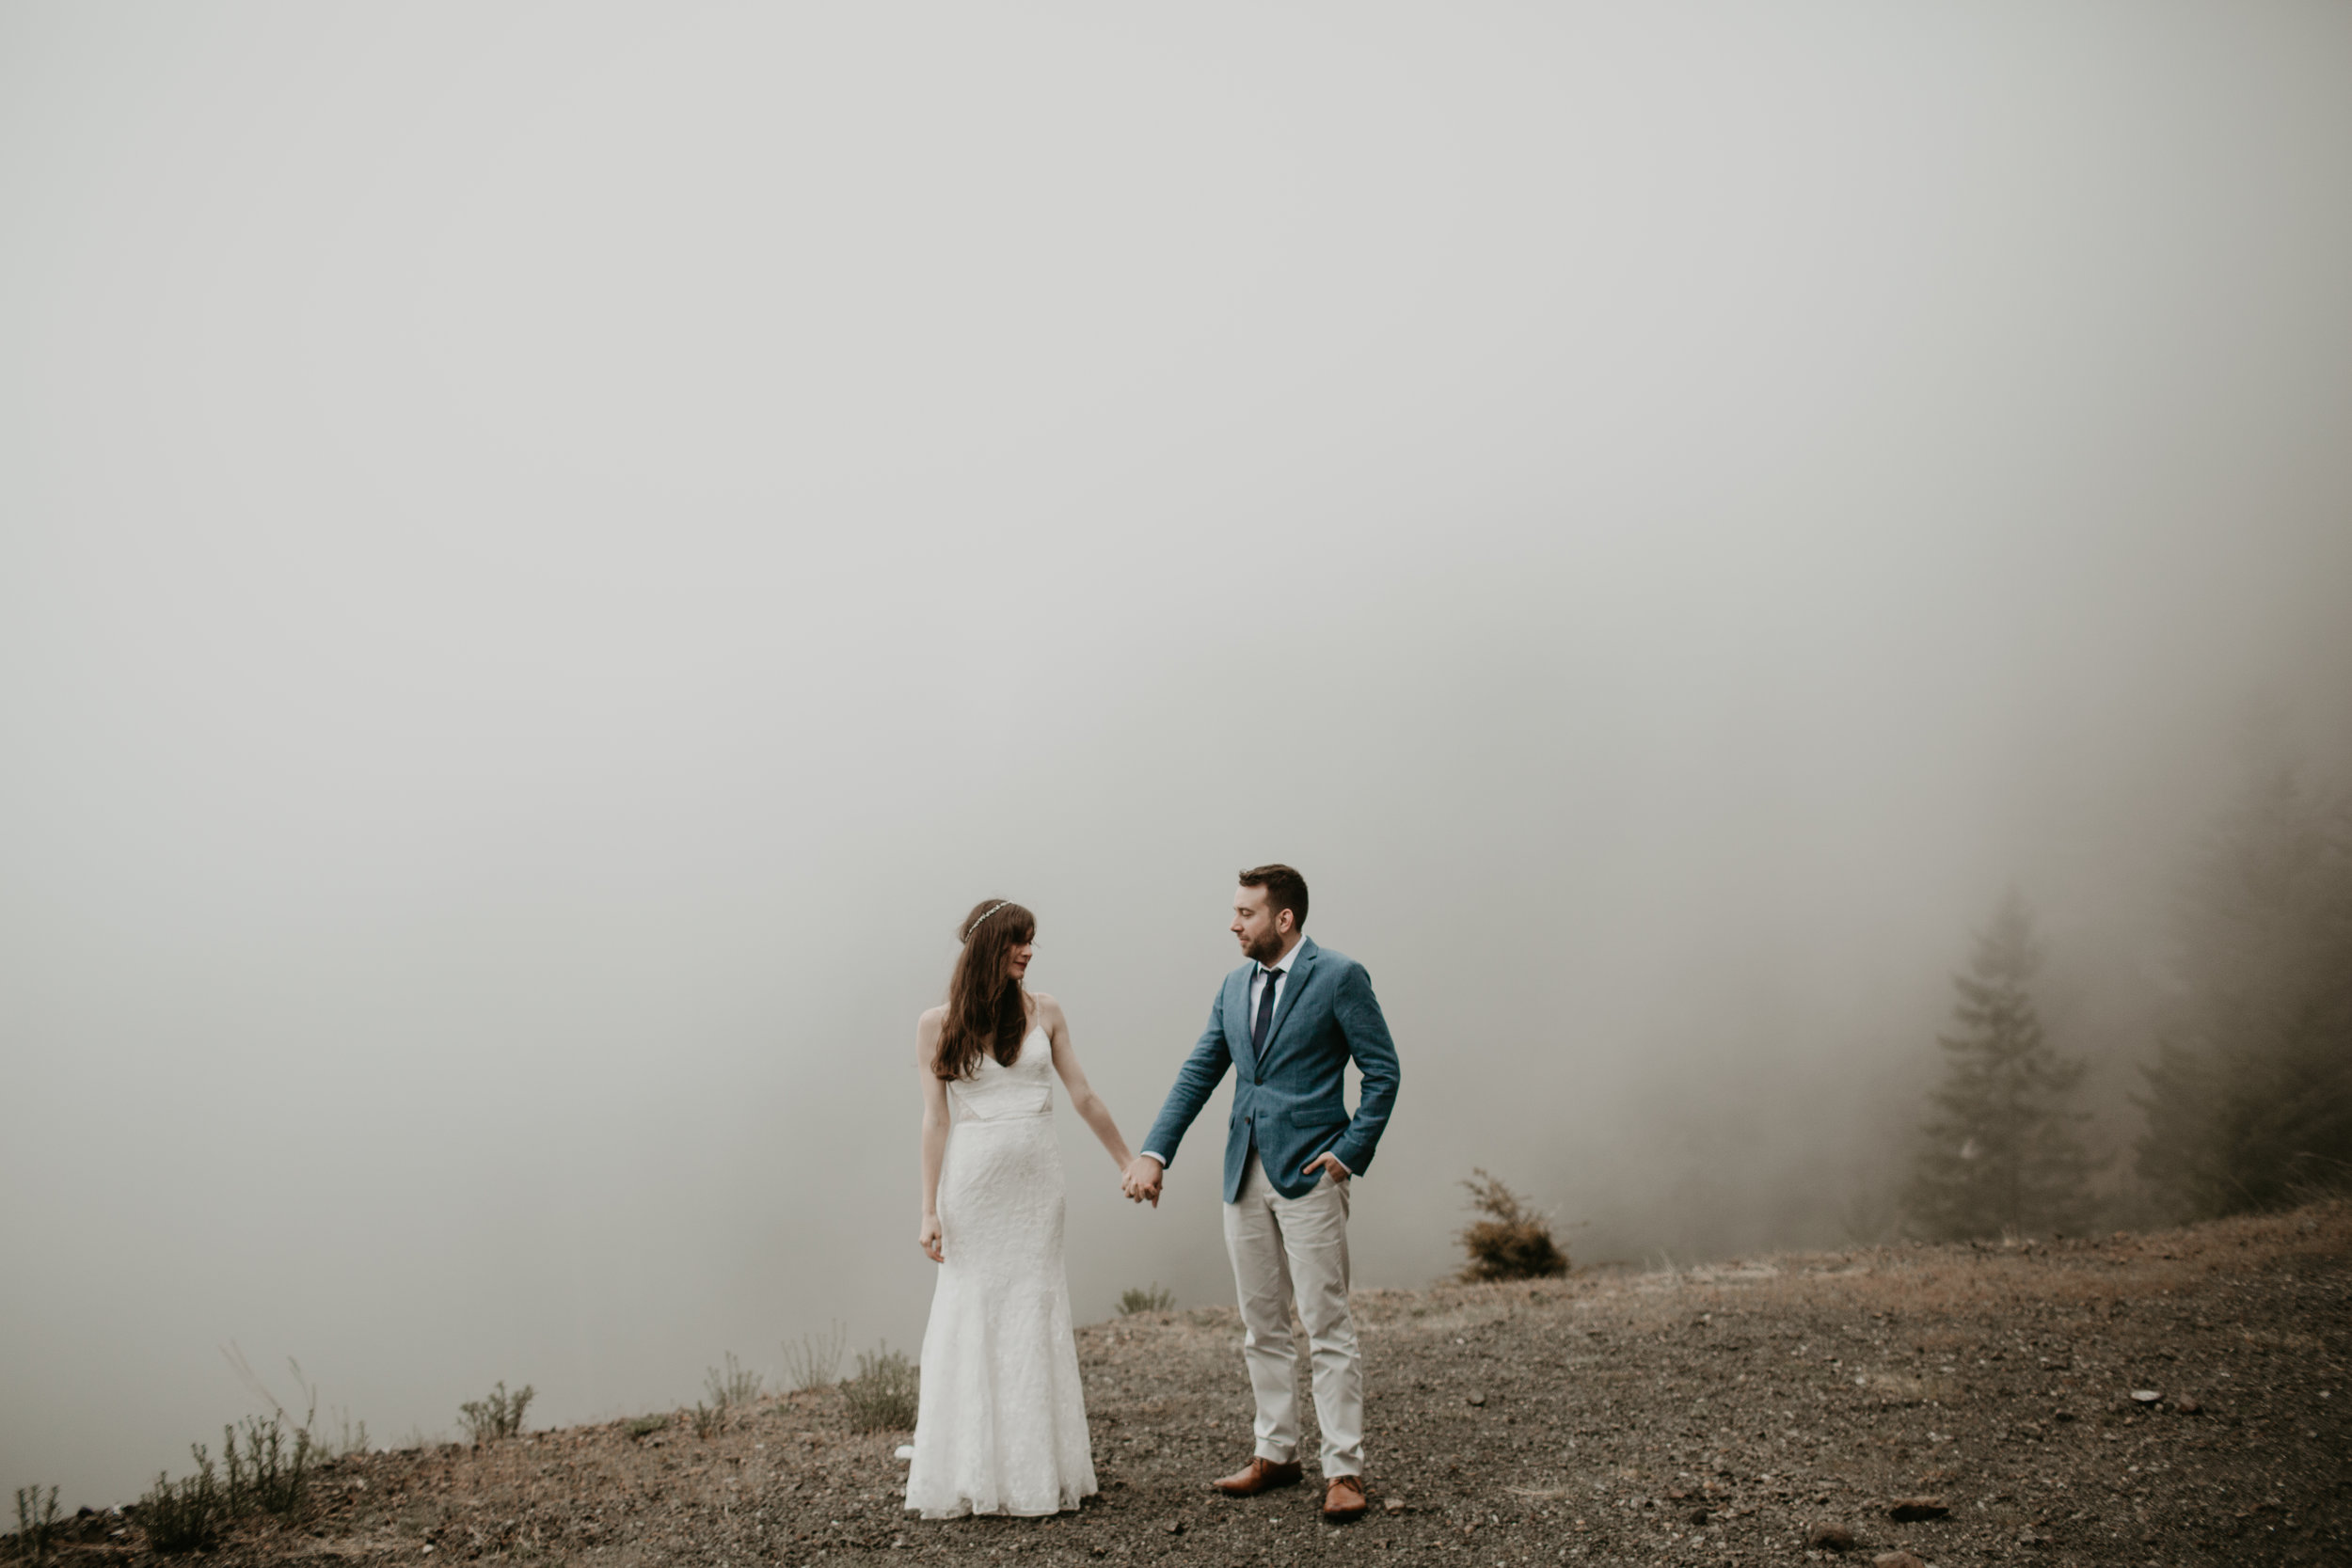 PNW-elopement-wedding-engagement-olympic national park-port angeles-hurricane ridge-lake crescent-kayla dawn photography- photographer-photography-kayladawnphoto-220.jpg